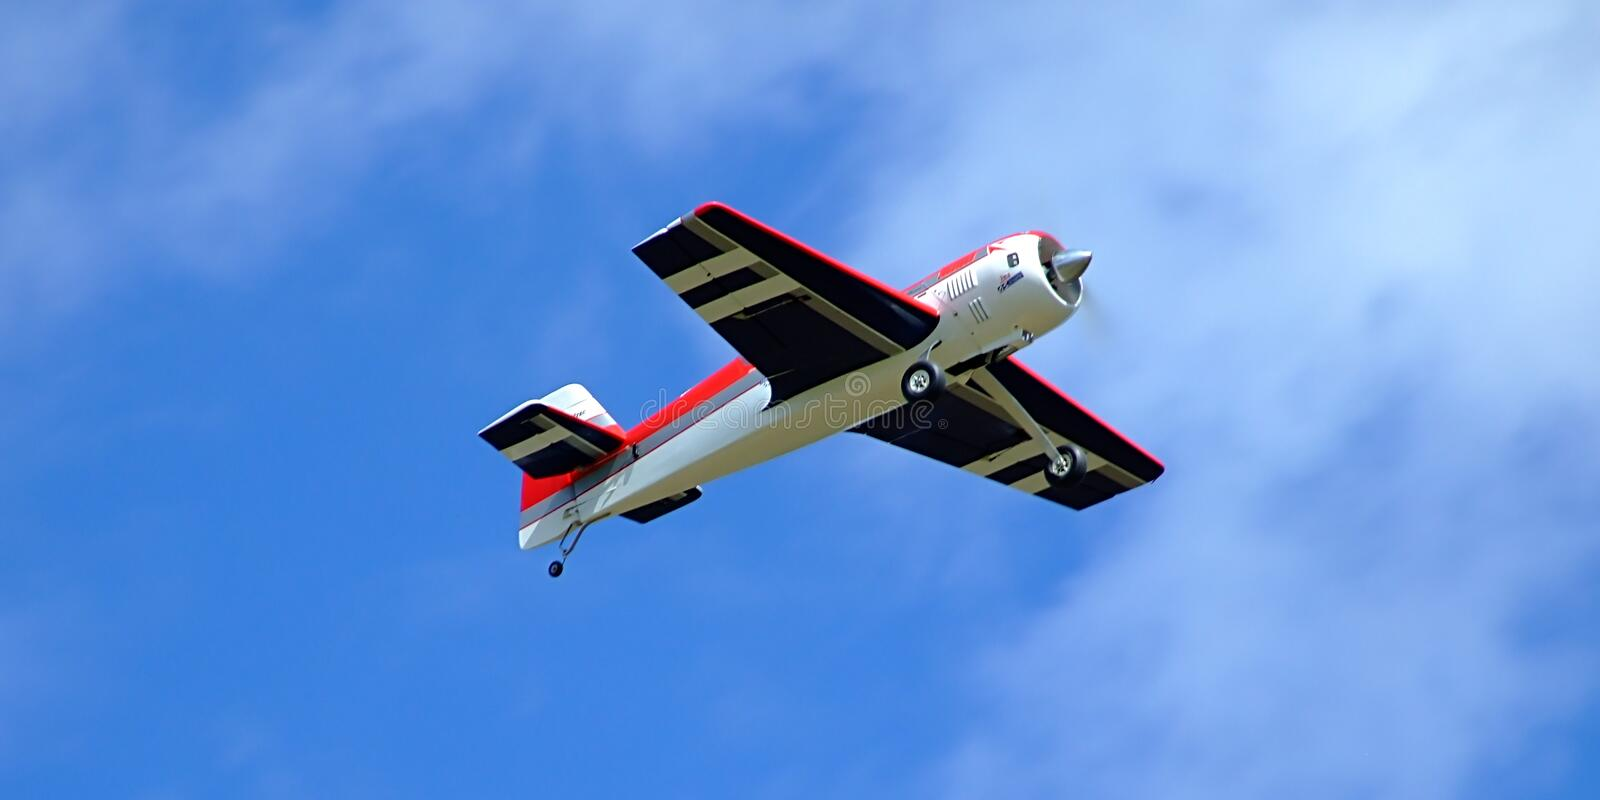 Model remote control plane in flight royalty free stock photography